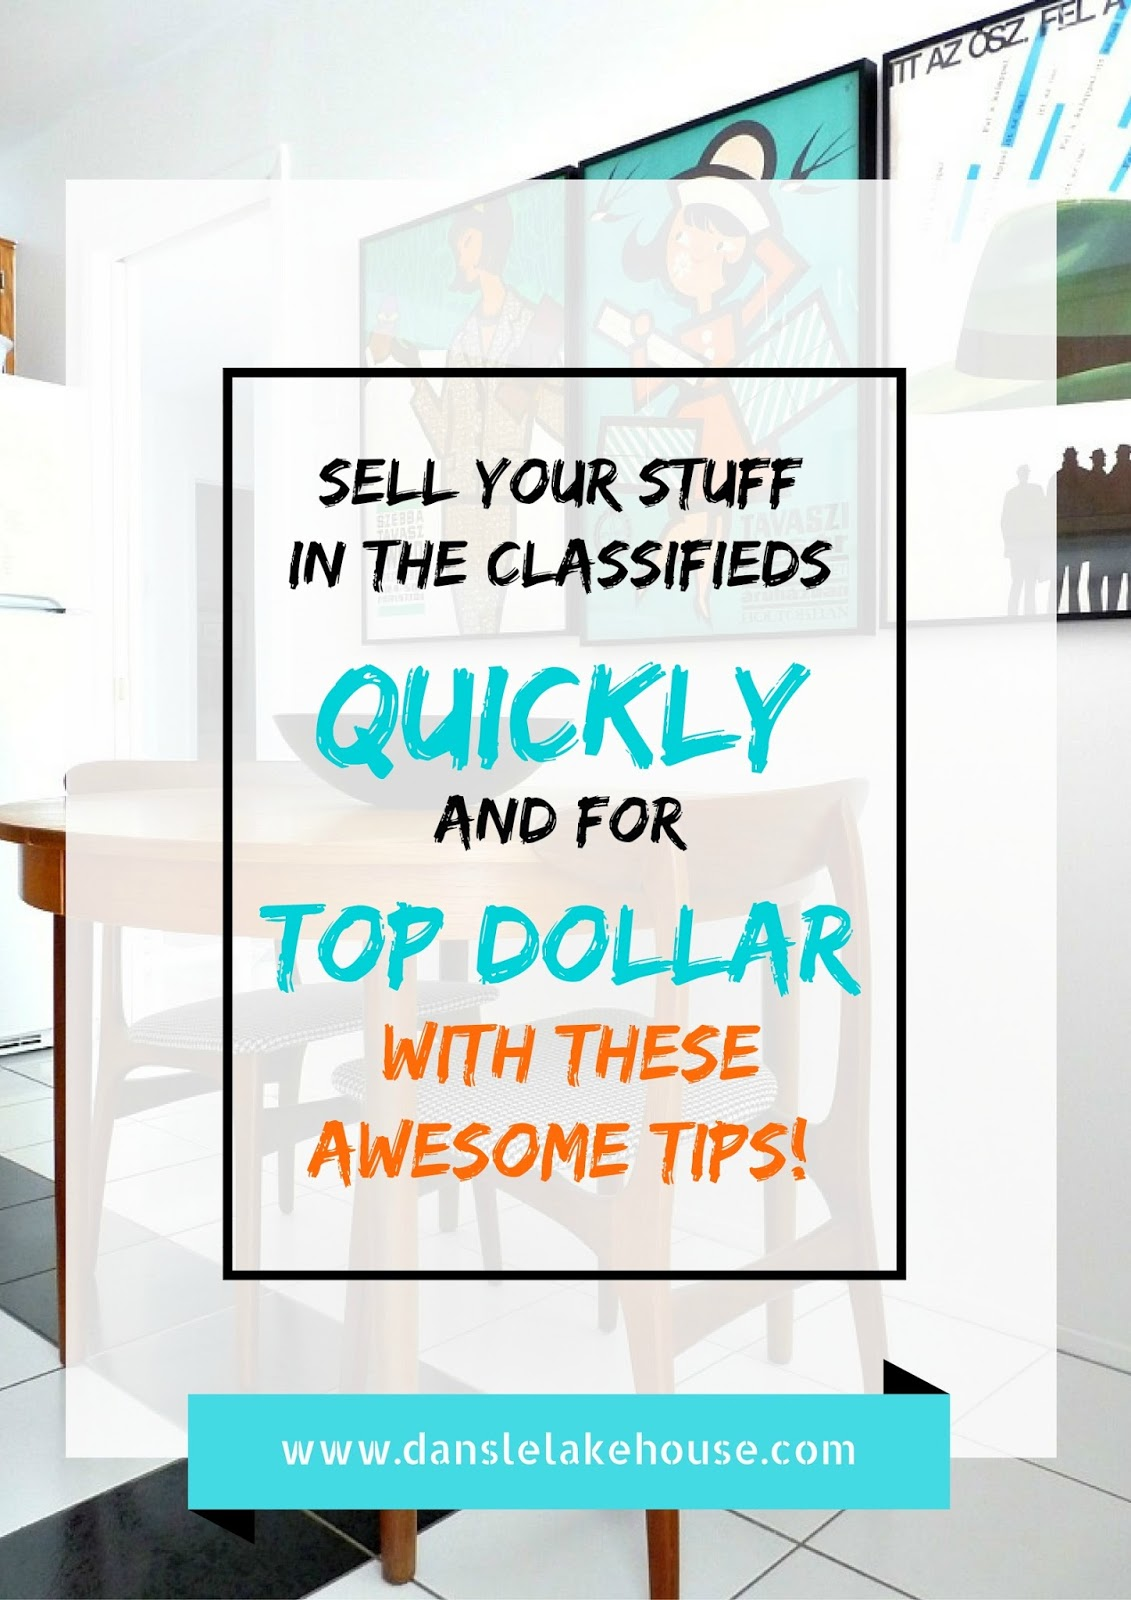 How to sell stuff FAST and for TOP DOLLAR in the classifieds